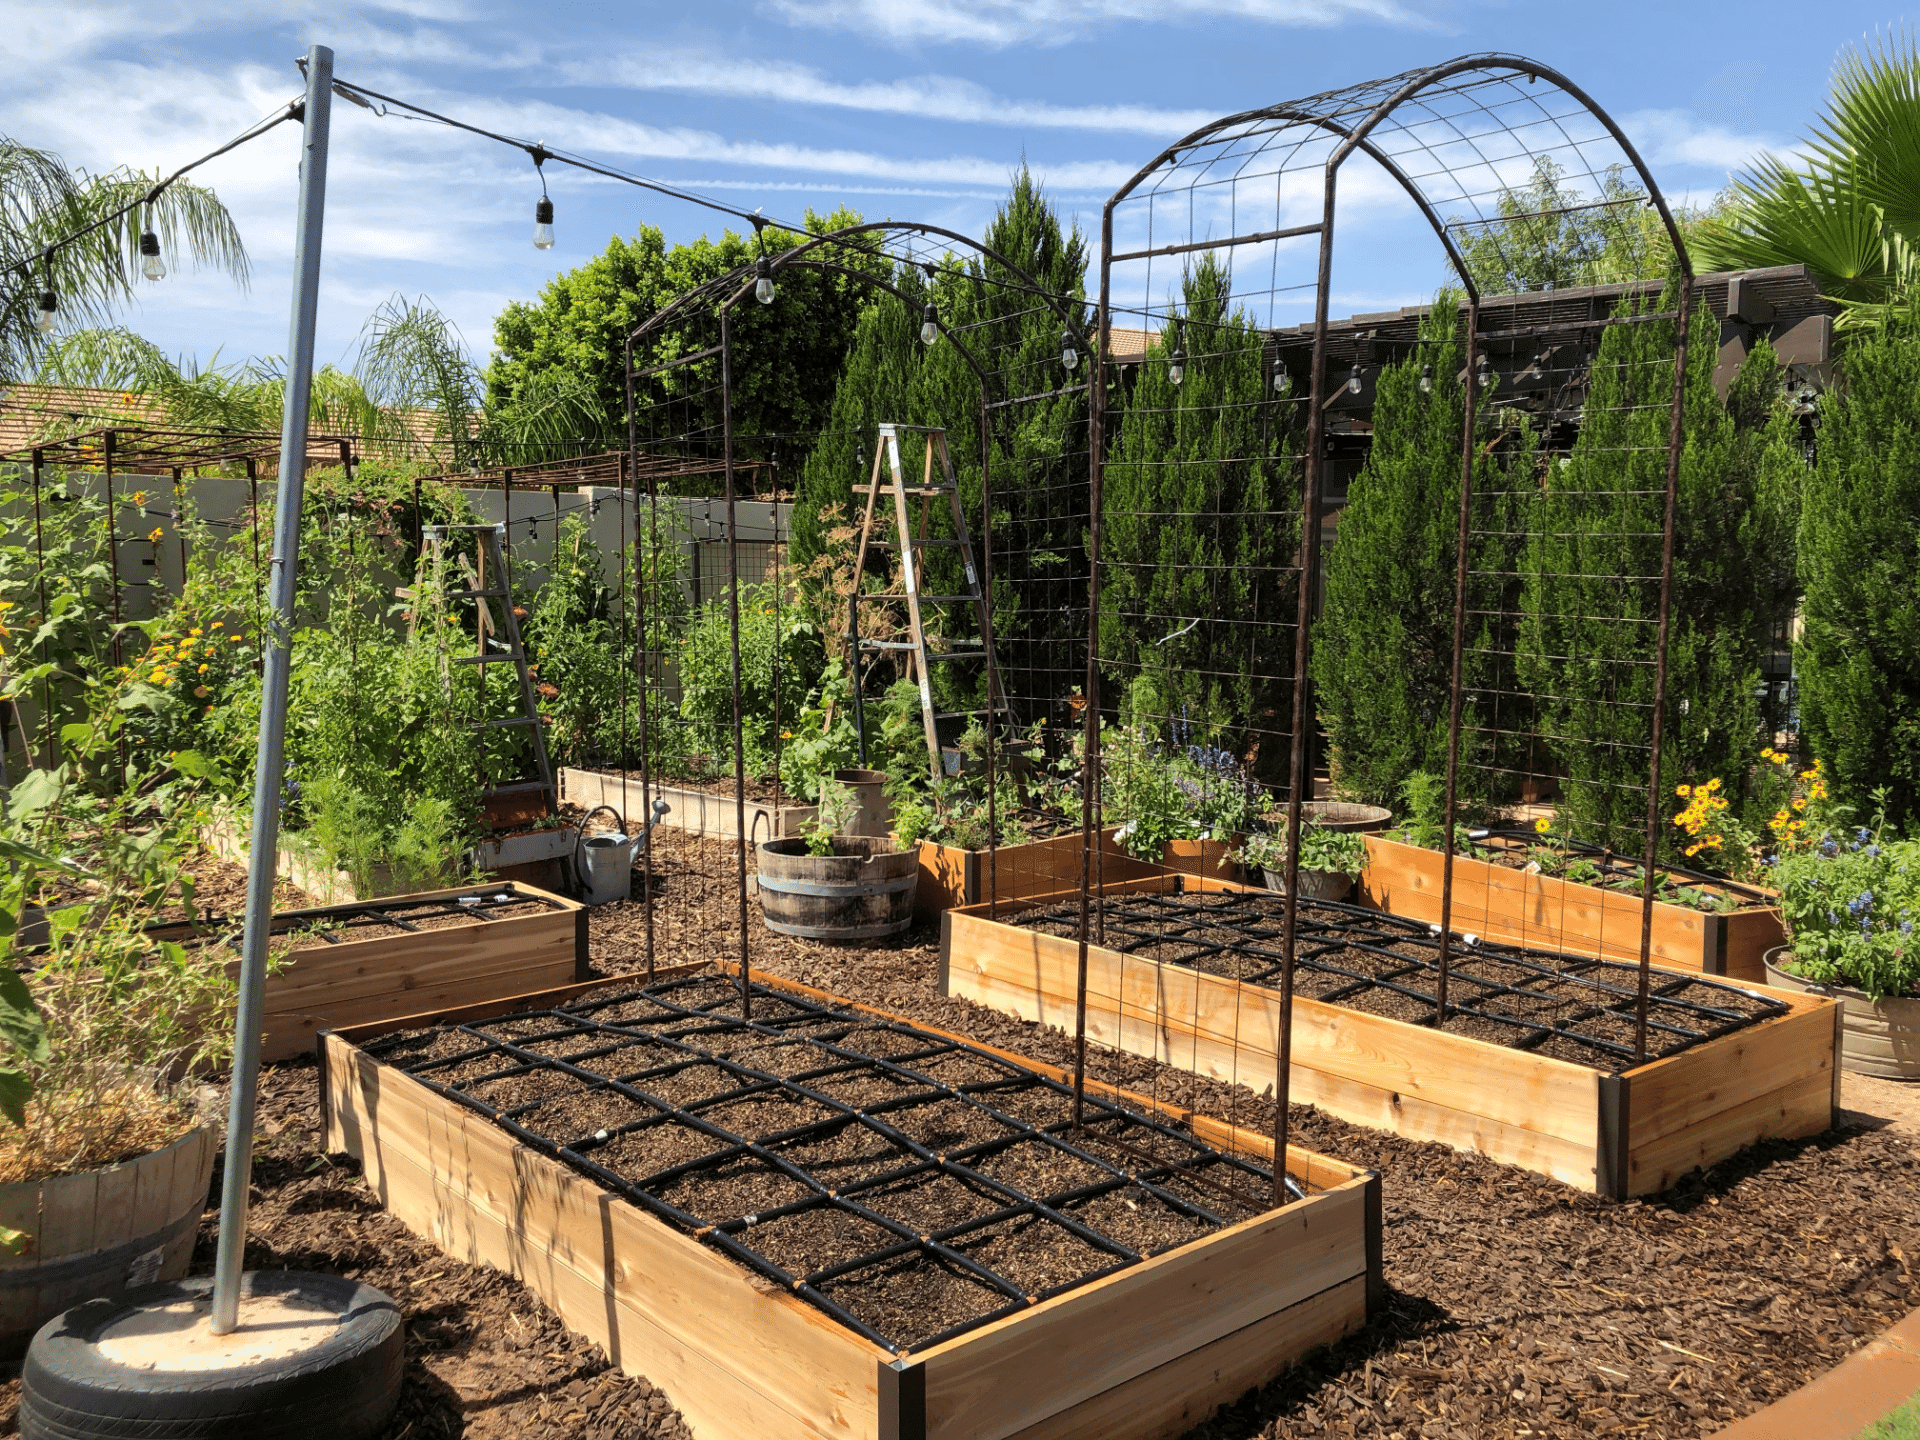 Plant Spacing in Square foot gardening